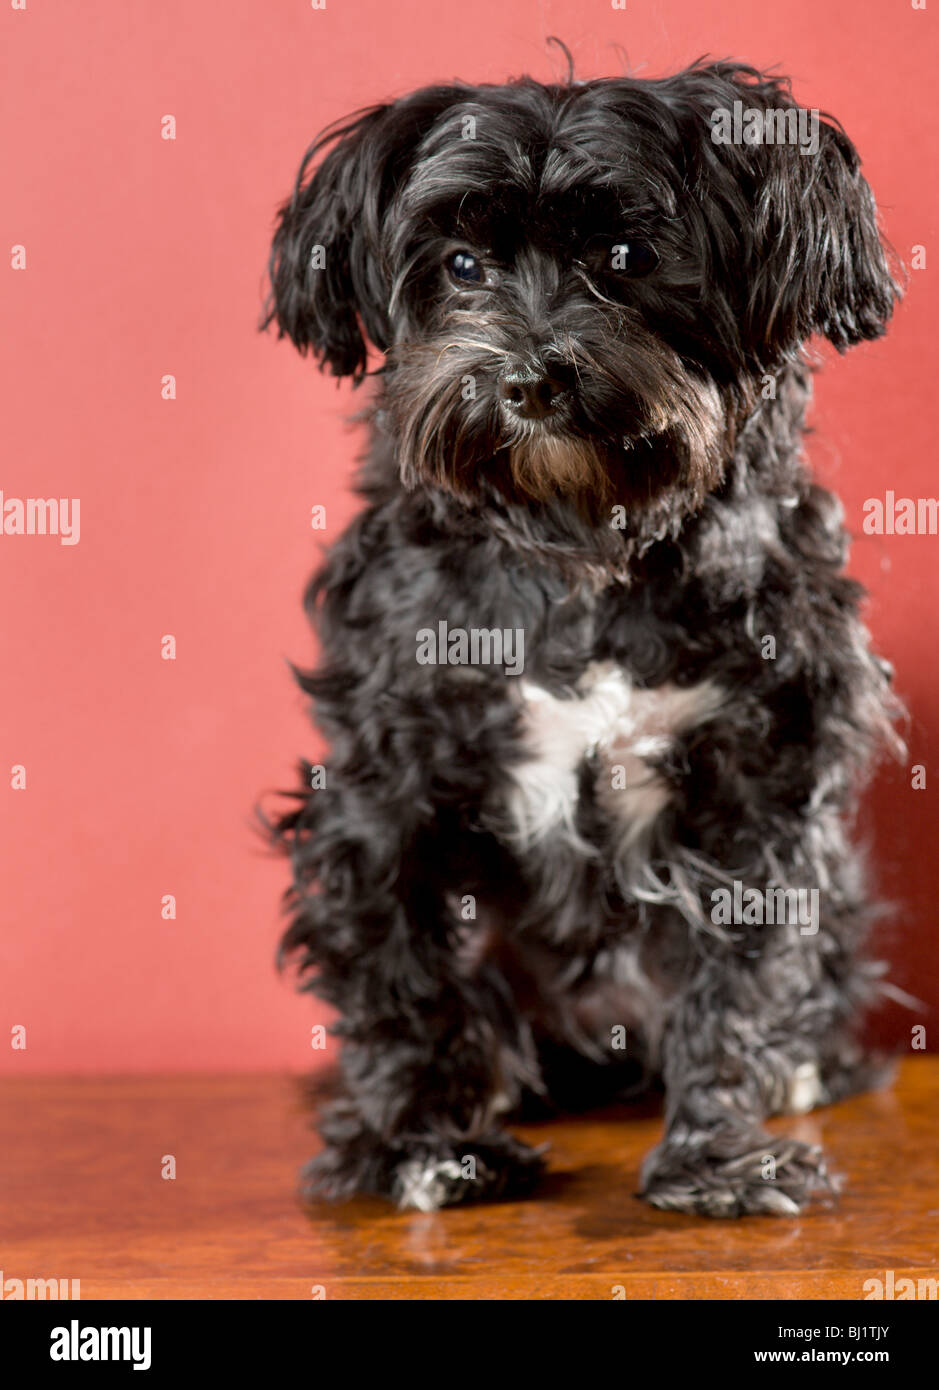 Full Length Portrait Of A Black Maltese Yorkie Mix Dog Sitting Stock